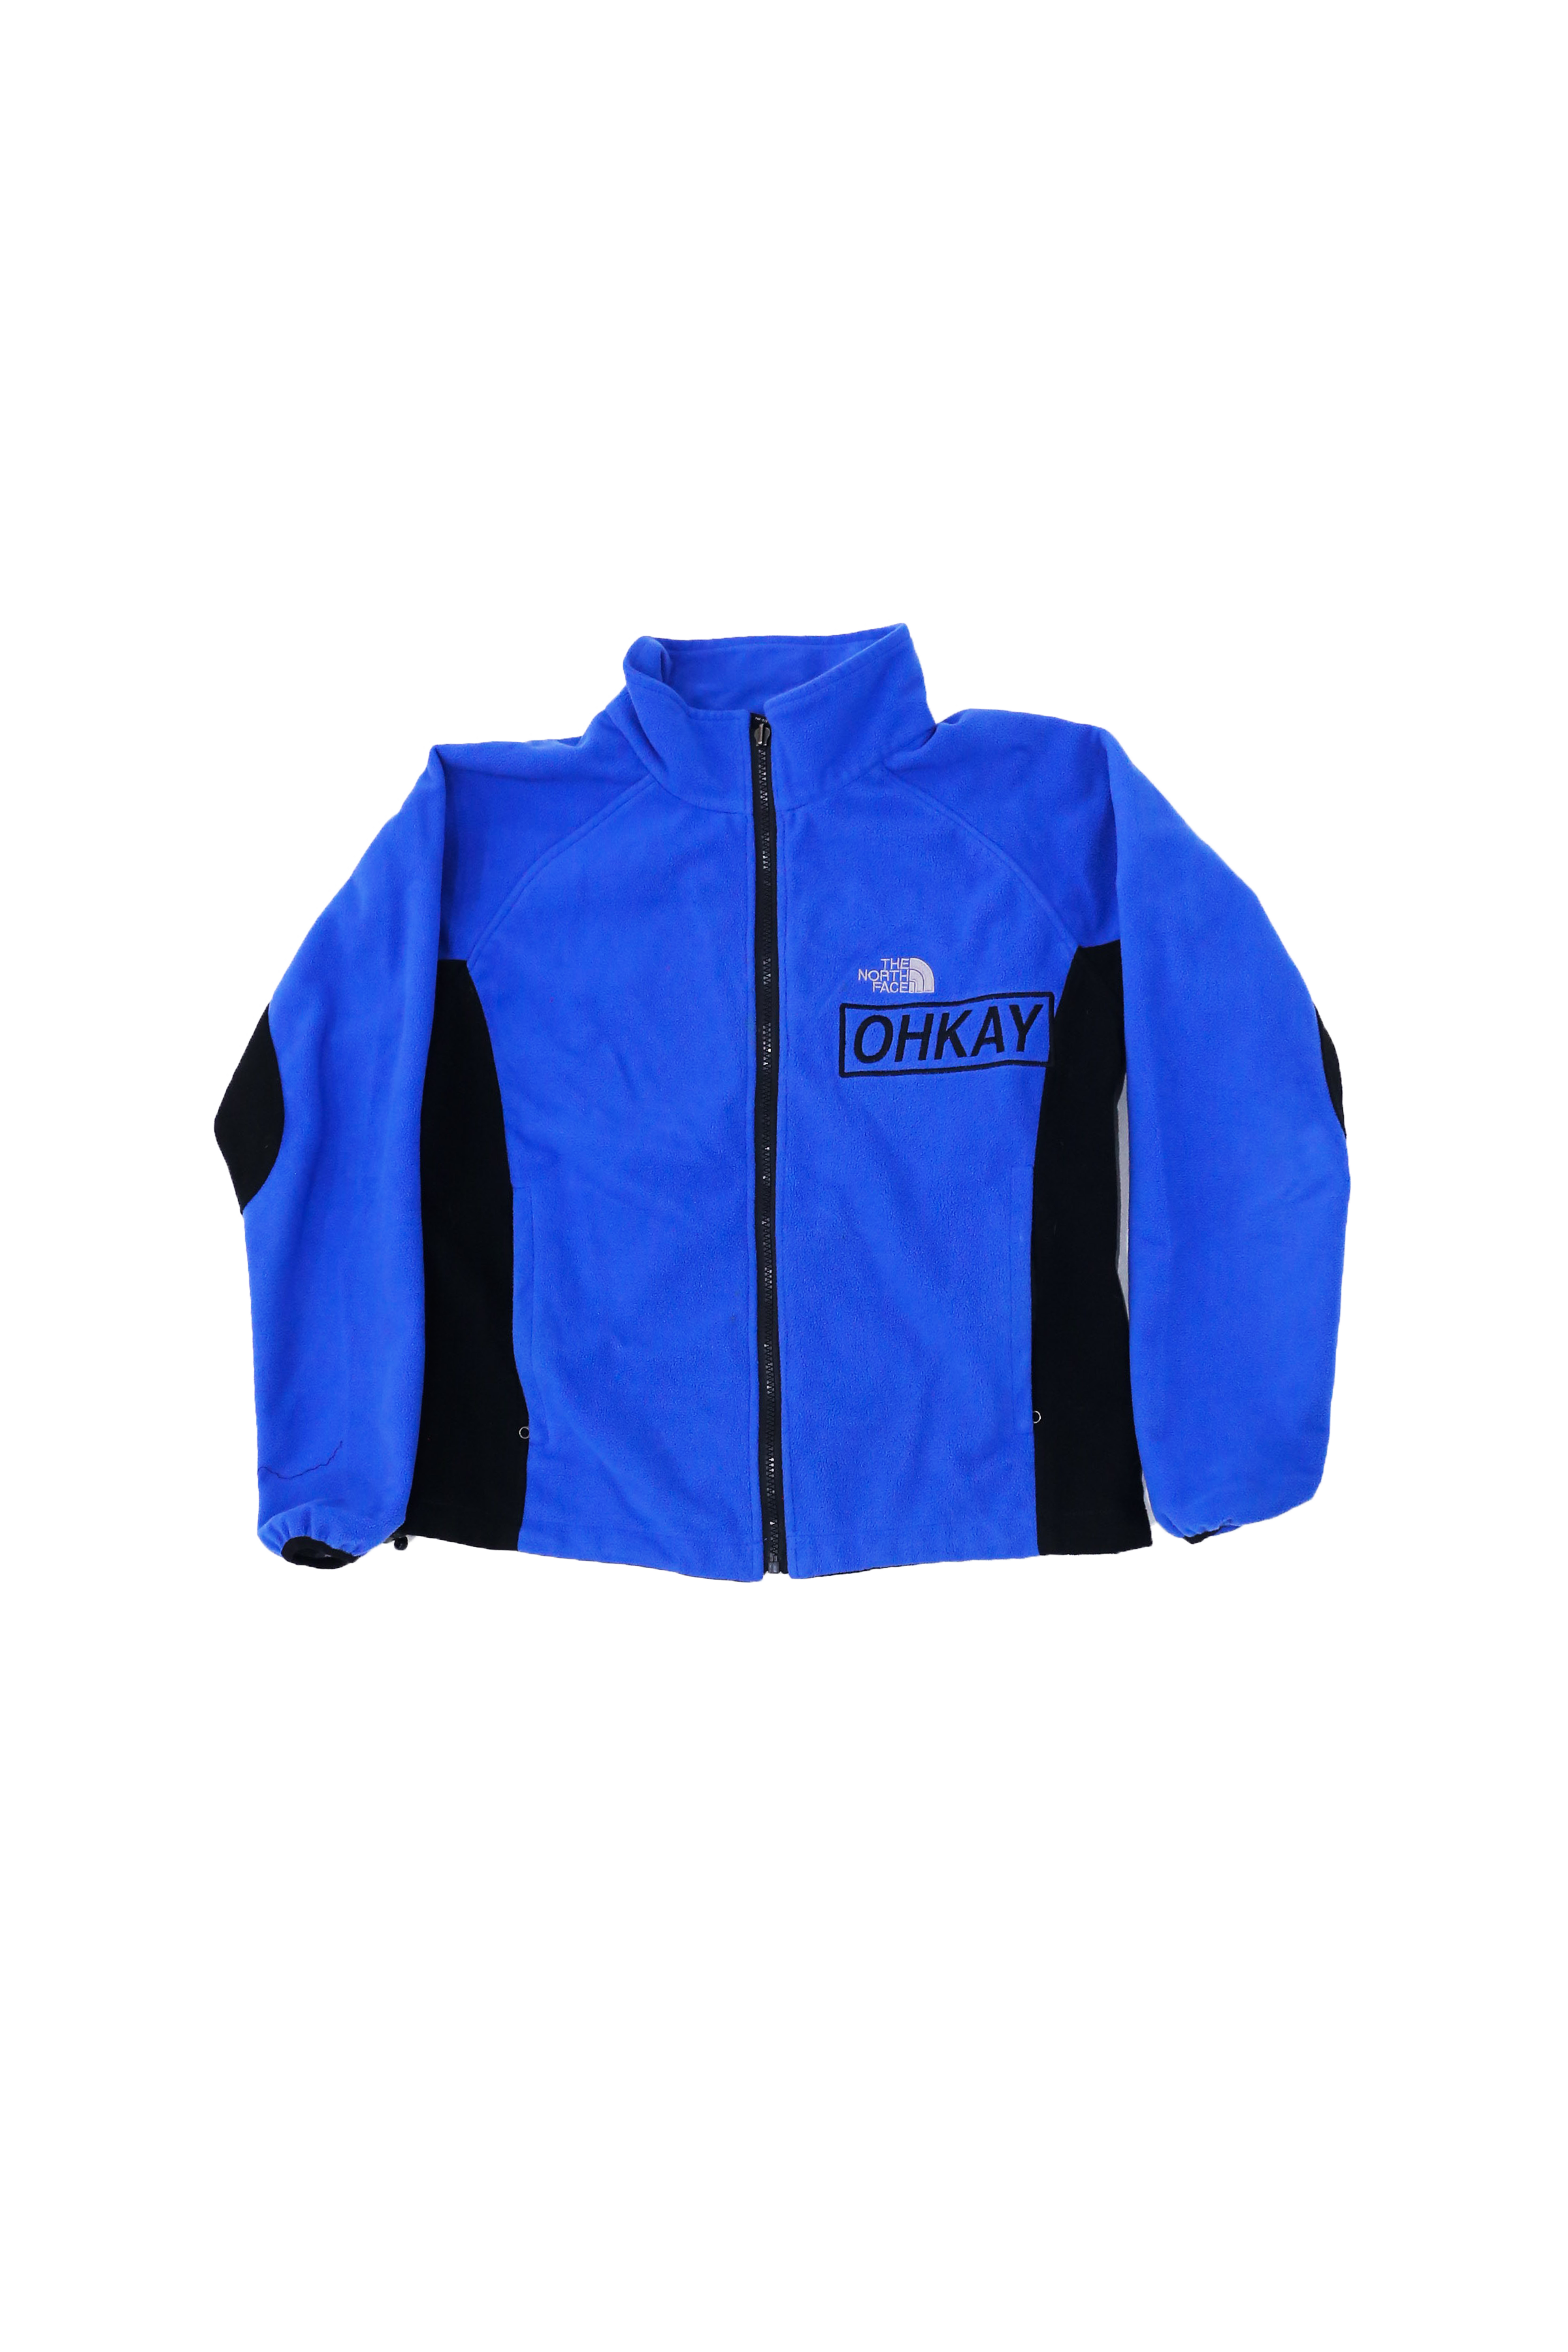 north face front.png